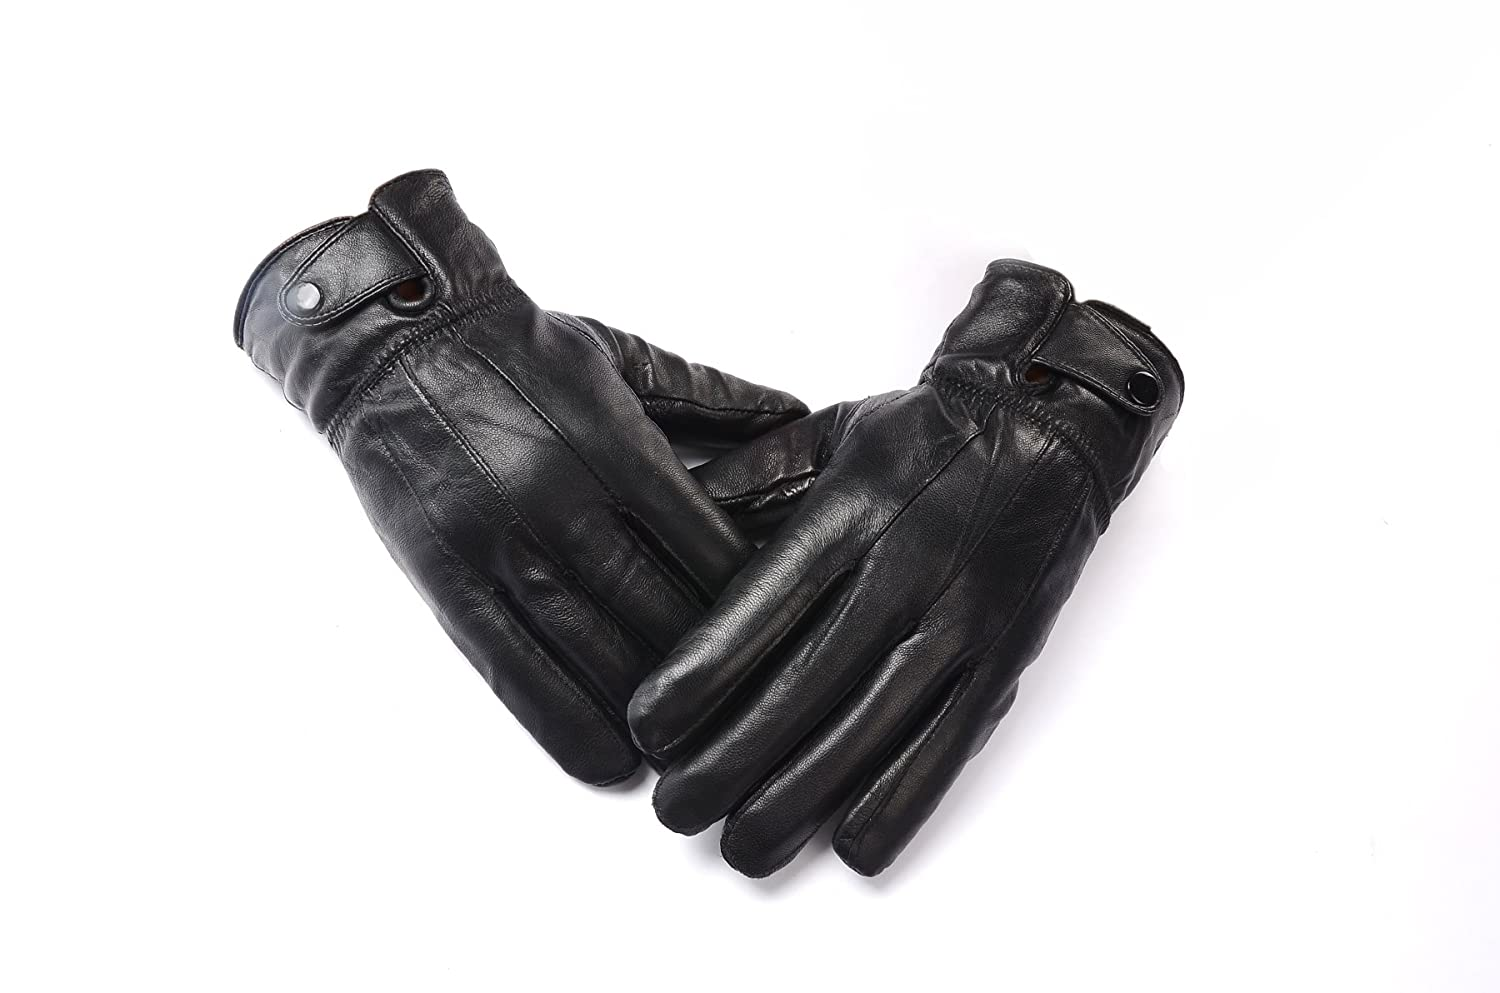 Mens leather gloves black friday - Anccion Men S Genuine Leather Warm Lined Driving Gloves Motorcycle Gloves